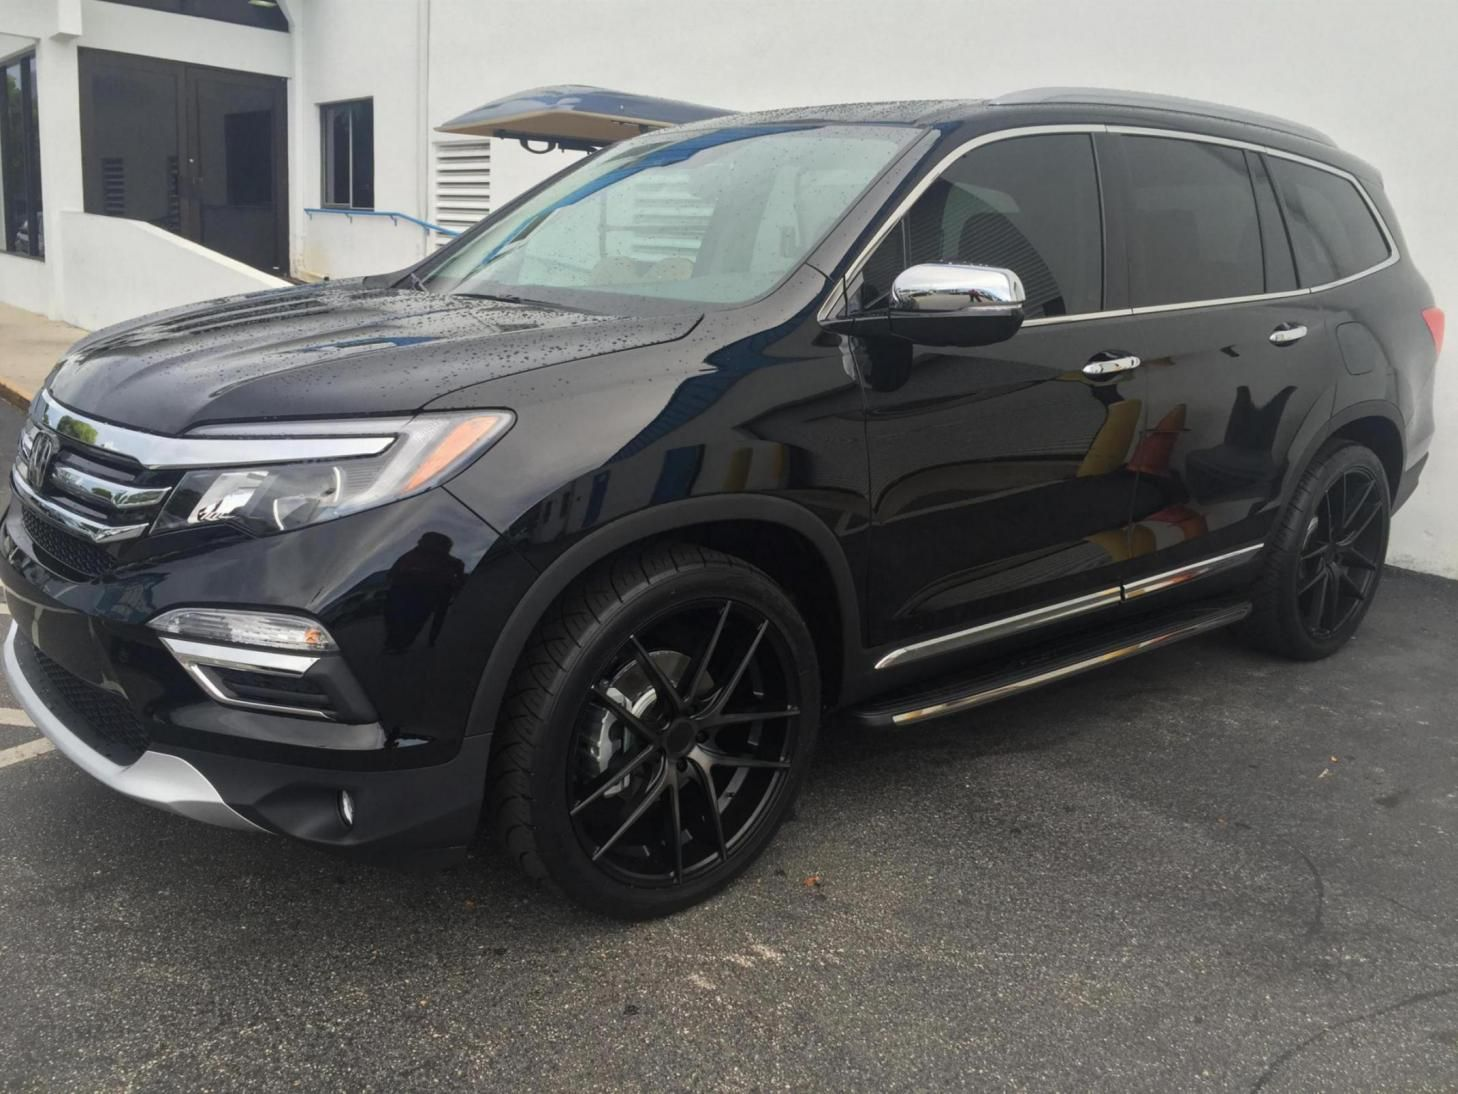 2016 Honda Pilot Loving The Rims On It